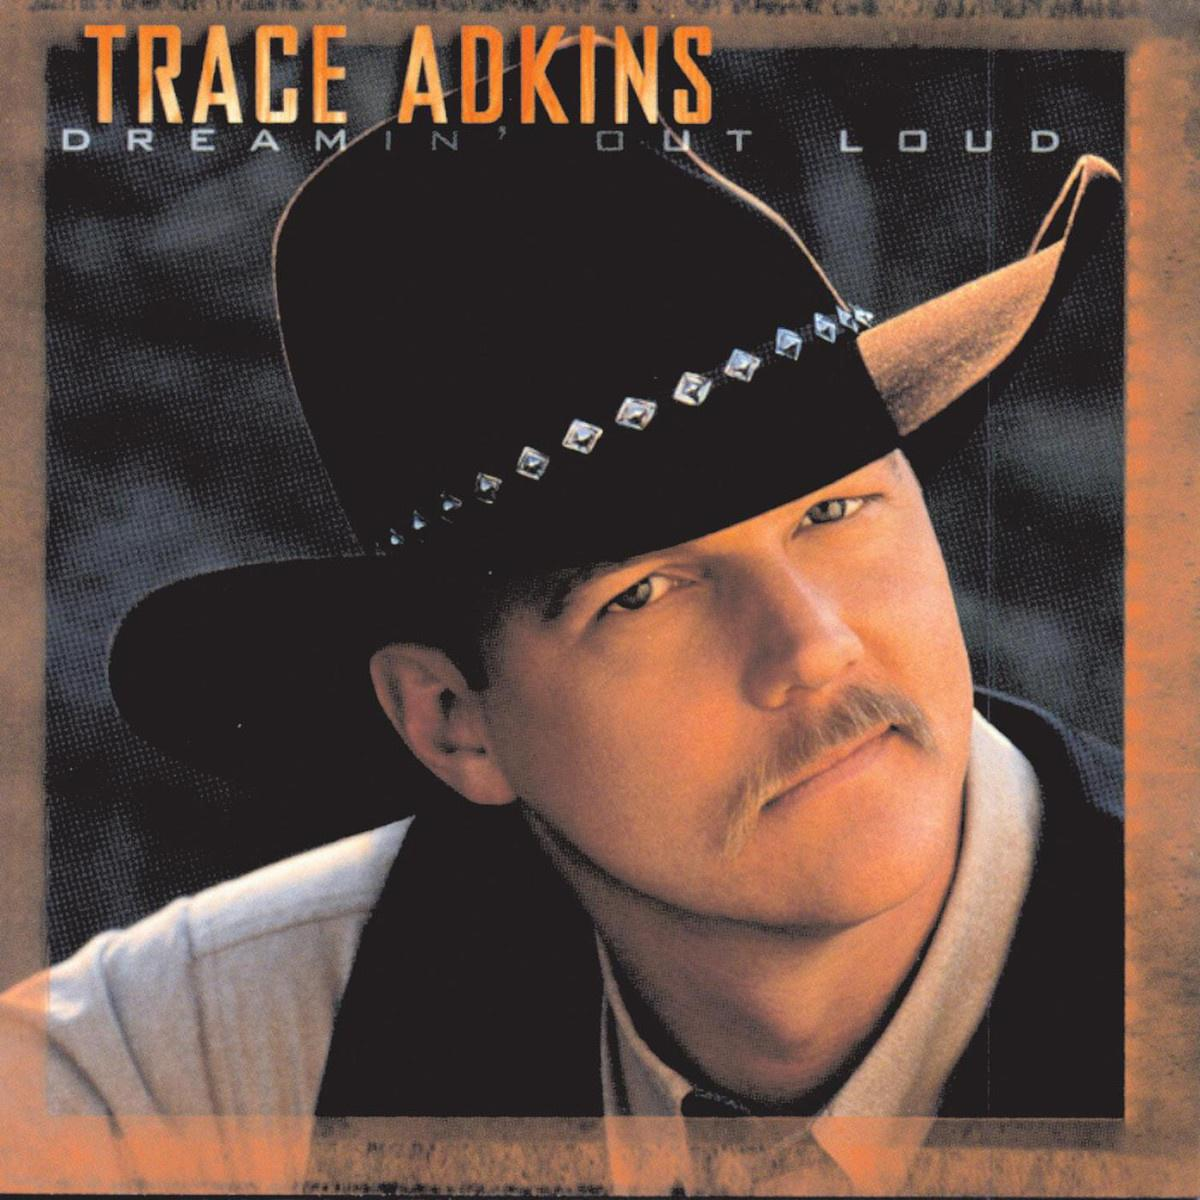 Trace Adkins - Every Light In The House 老牌乡村音乐